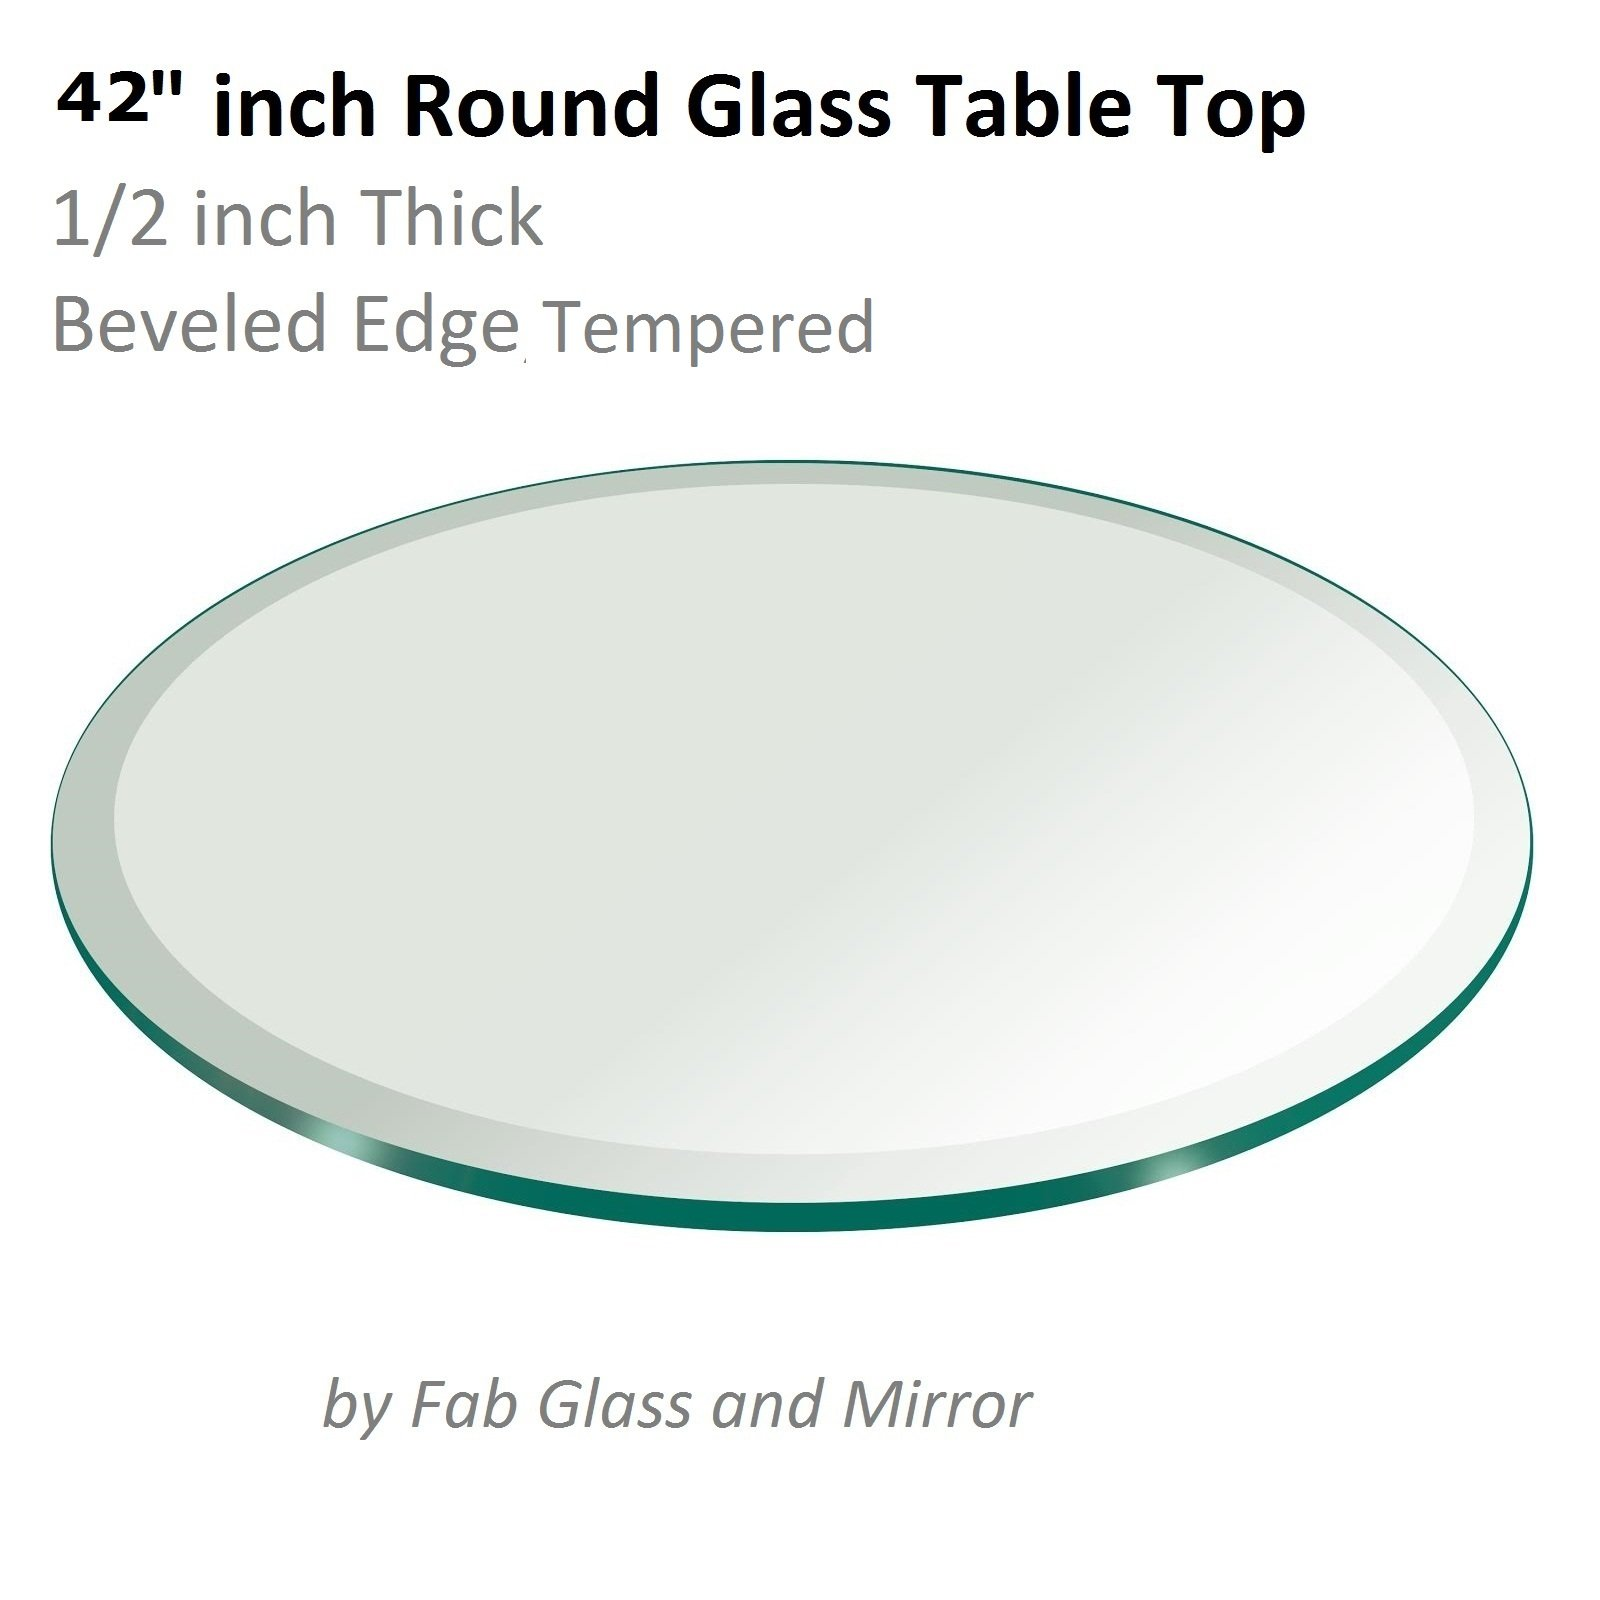 42'' Inch Round Glass Table Top 1/2'' Thick Tempered Beveled Edge by Fab Glass and Mirror by Fab Glass and Mirror